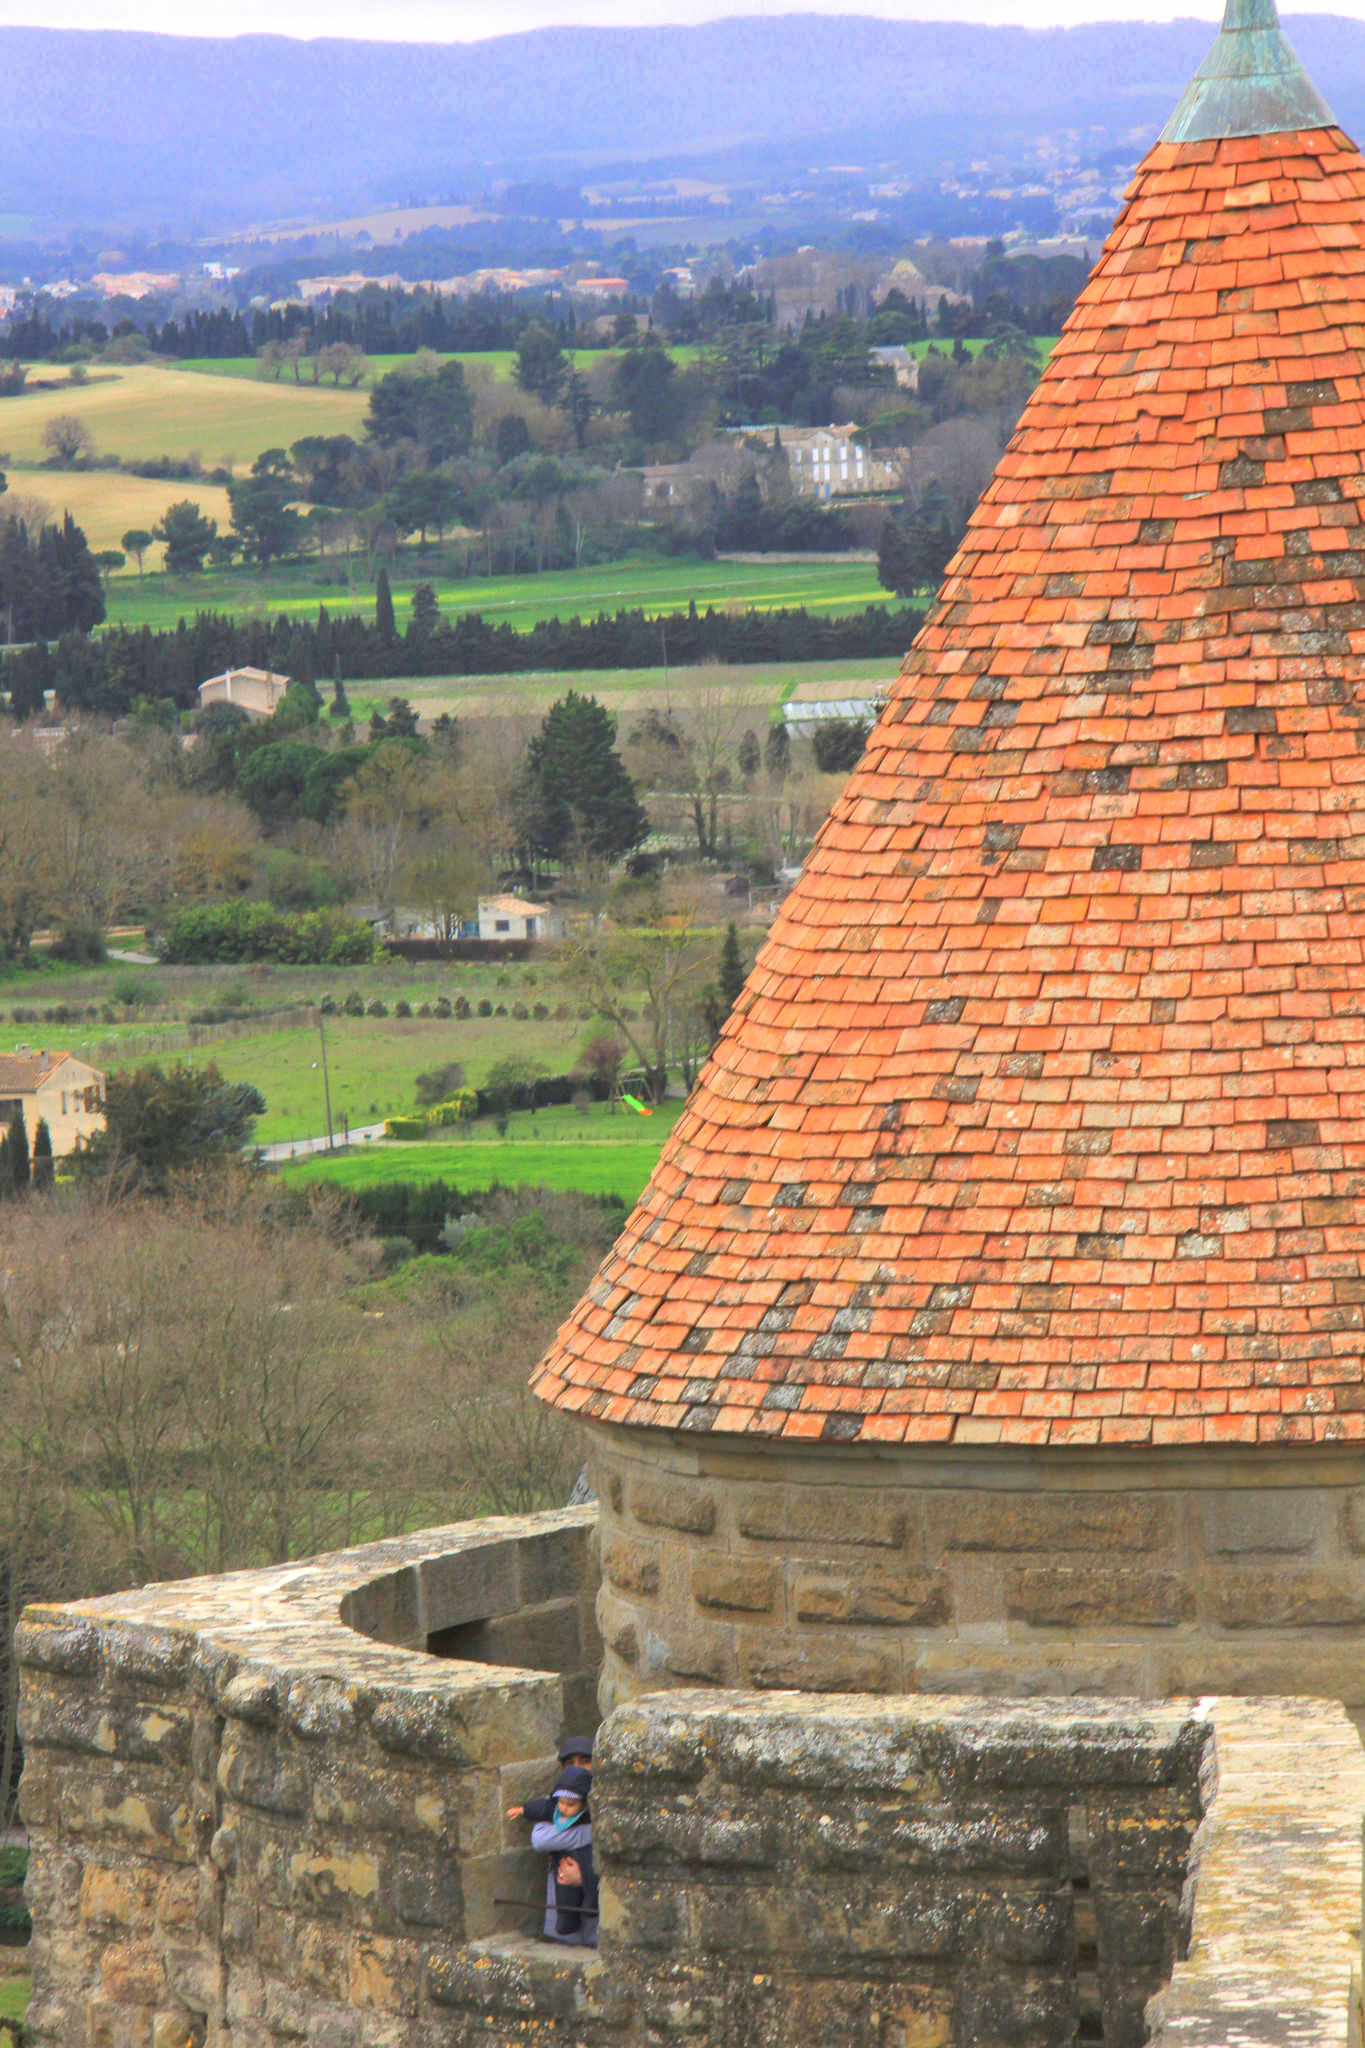 The views from the turrets of Carcassonne are breathtaking